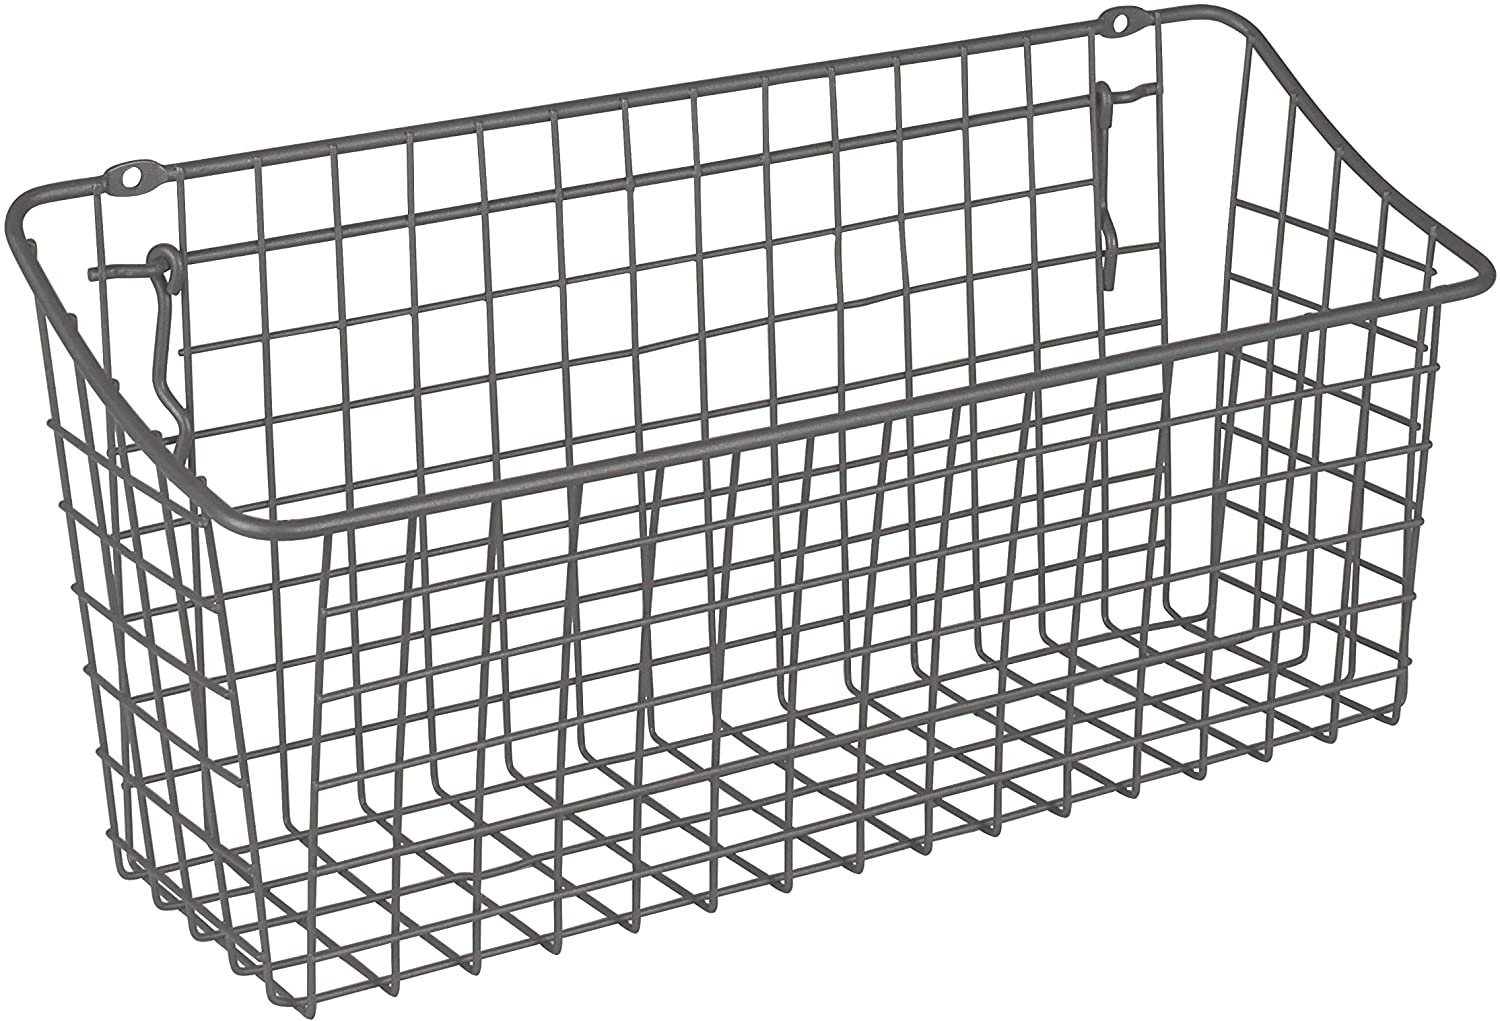 Versatile Wall Organizer for Tools /& Craft Supplies Industrial Gray Home /& Garage Storage XL Wire Basket for Slatwall /& Pegboard Spectrum Diversified 15 x 5 x 7 Pegboard /& Wall Mount Basket